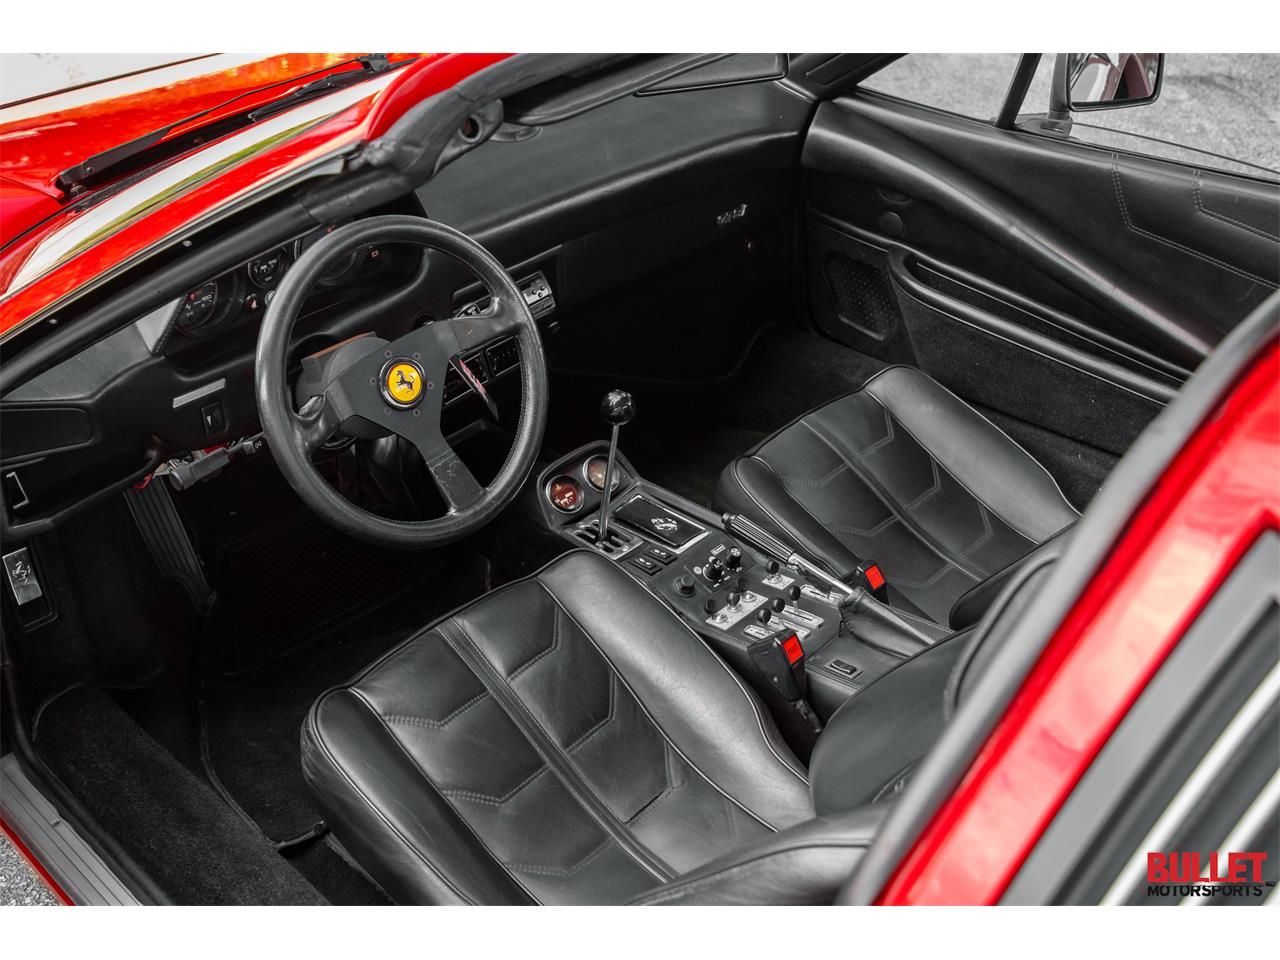 Large Picture of 1985 Ferrari 308 GTS located in Fort Lauderdale Florida - $60,000.00 - QJ3G